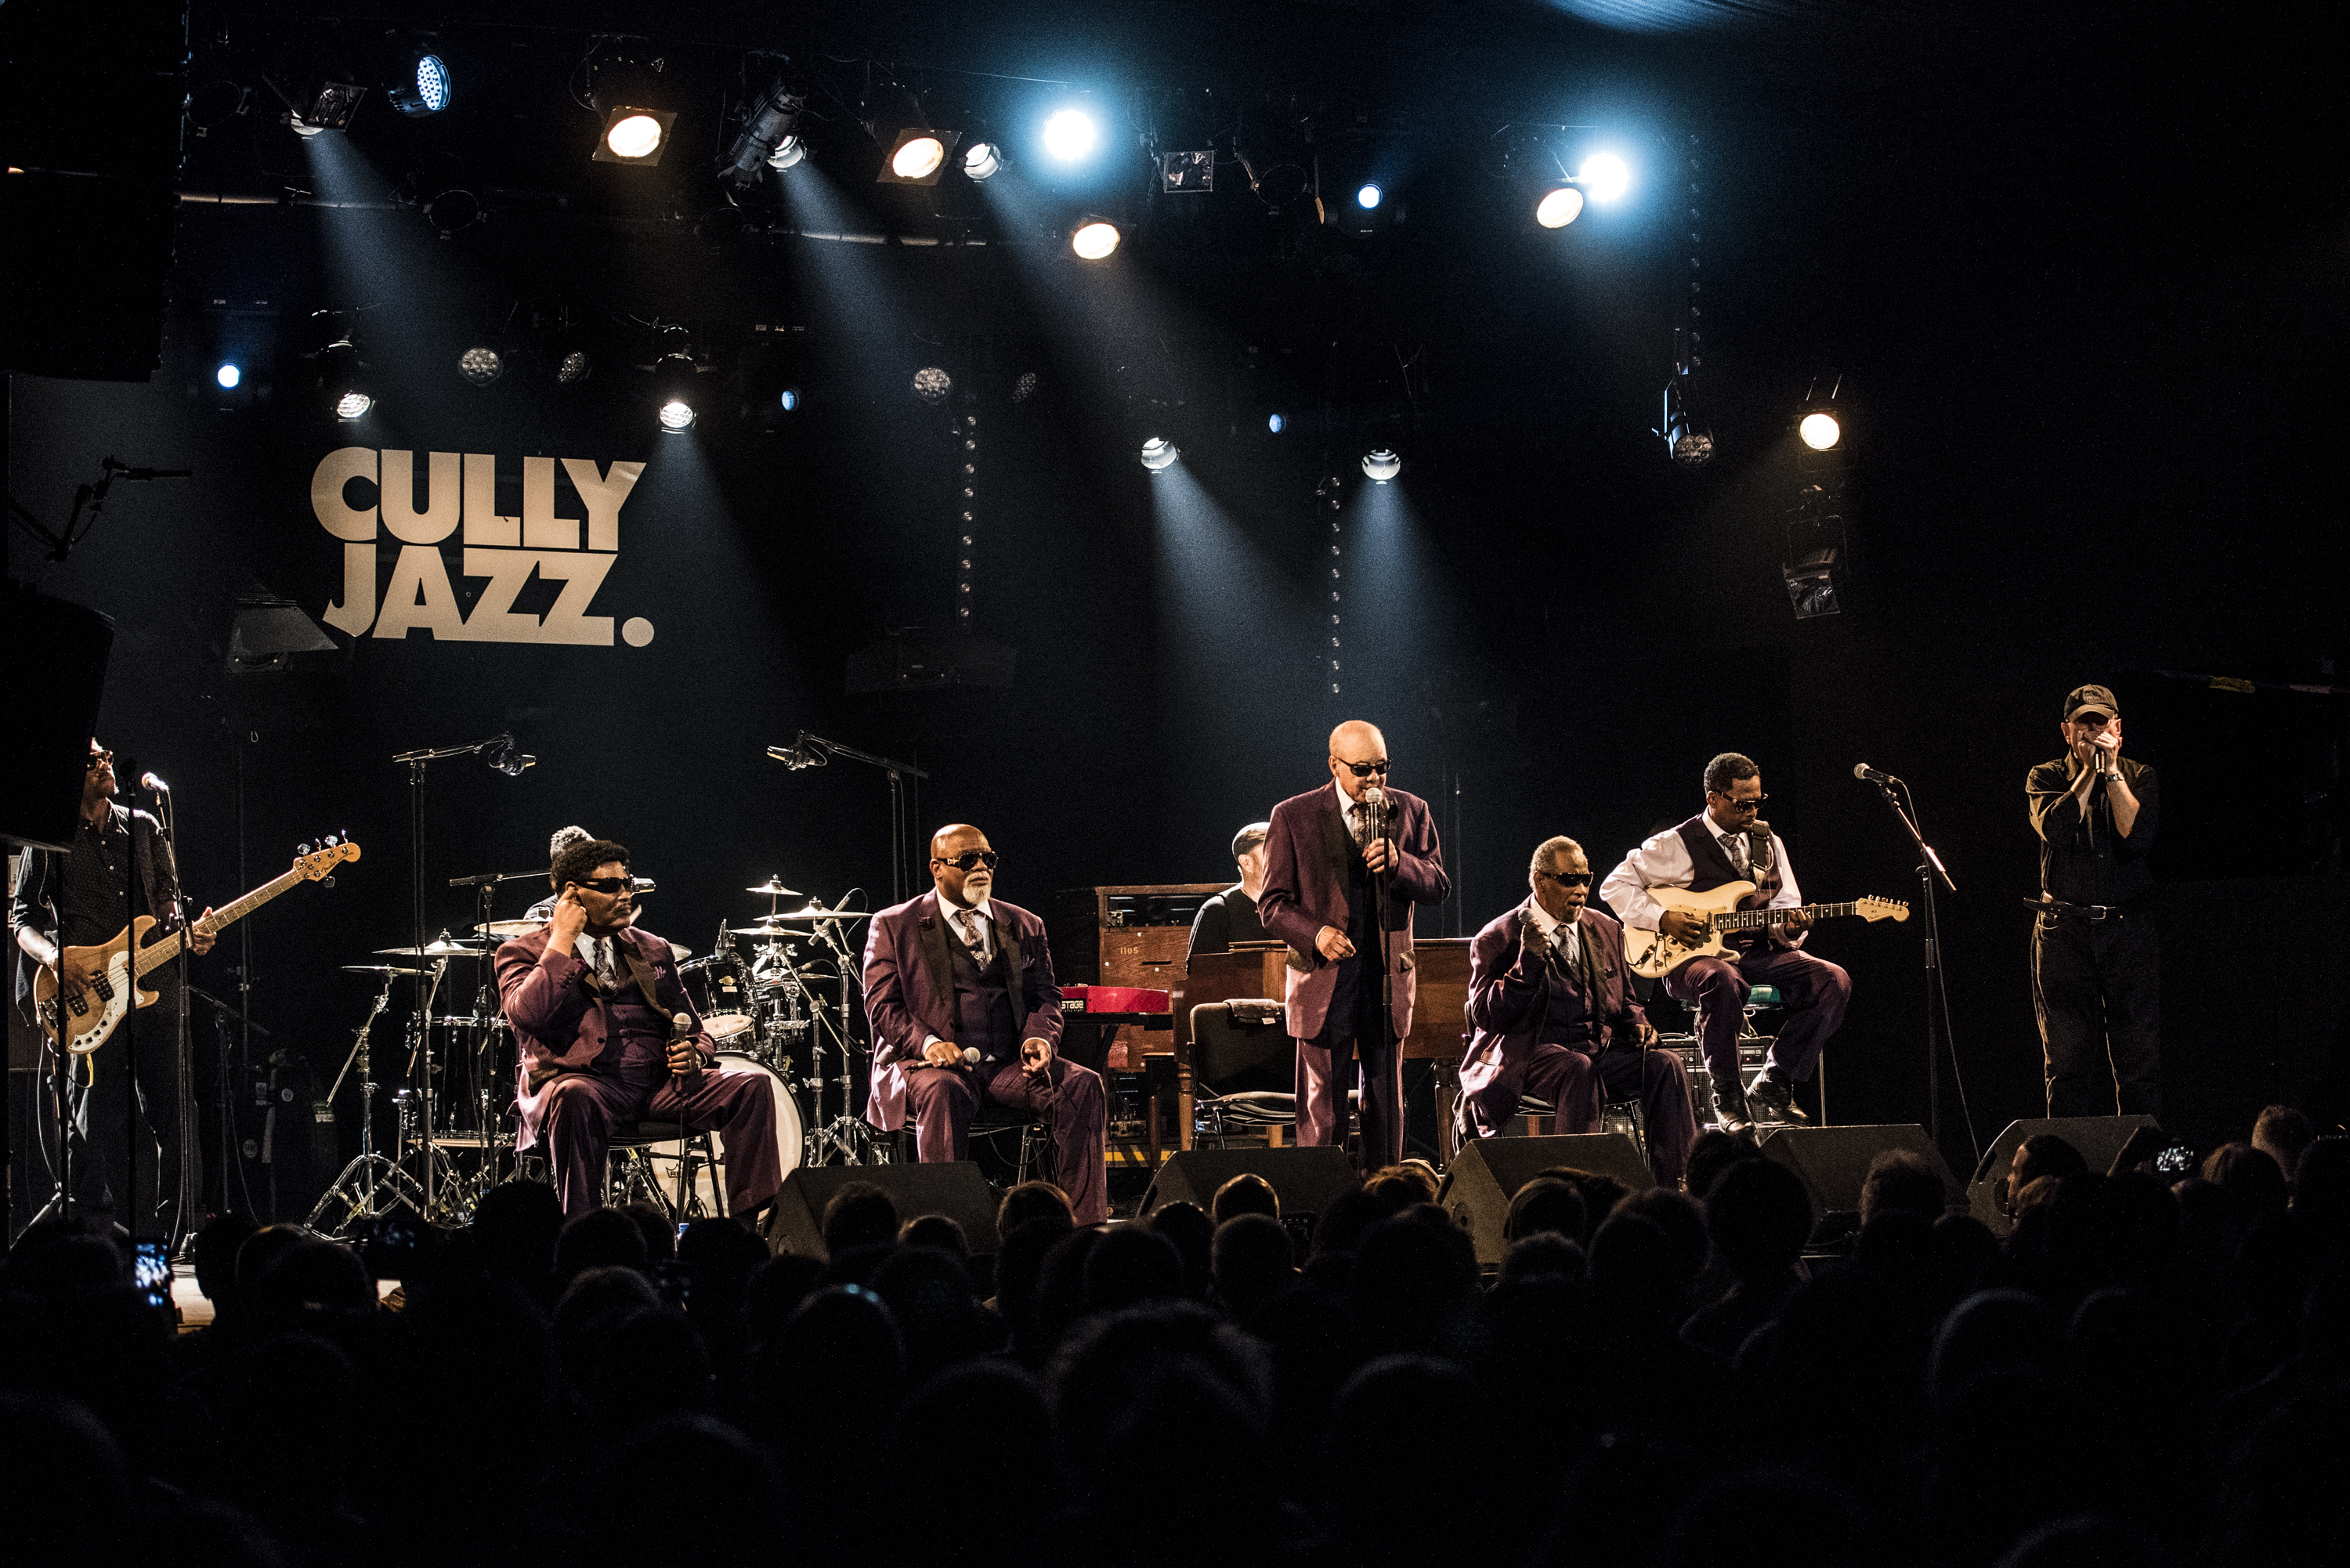 The Blind Boys of Alabama special guest Fabrizio Poggi live at the Cully Jazz Festival photo by Christophe Losberger